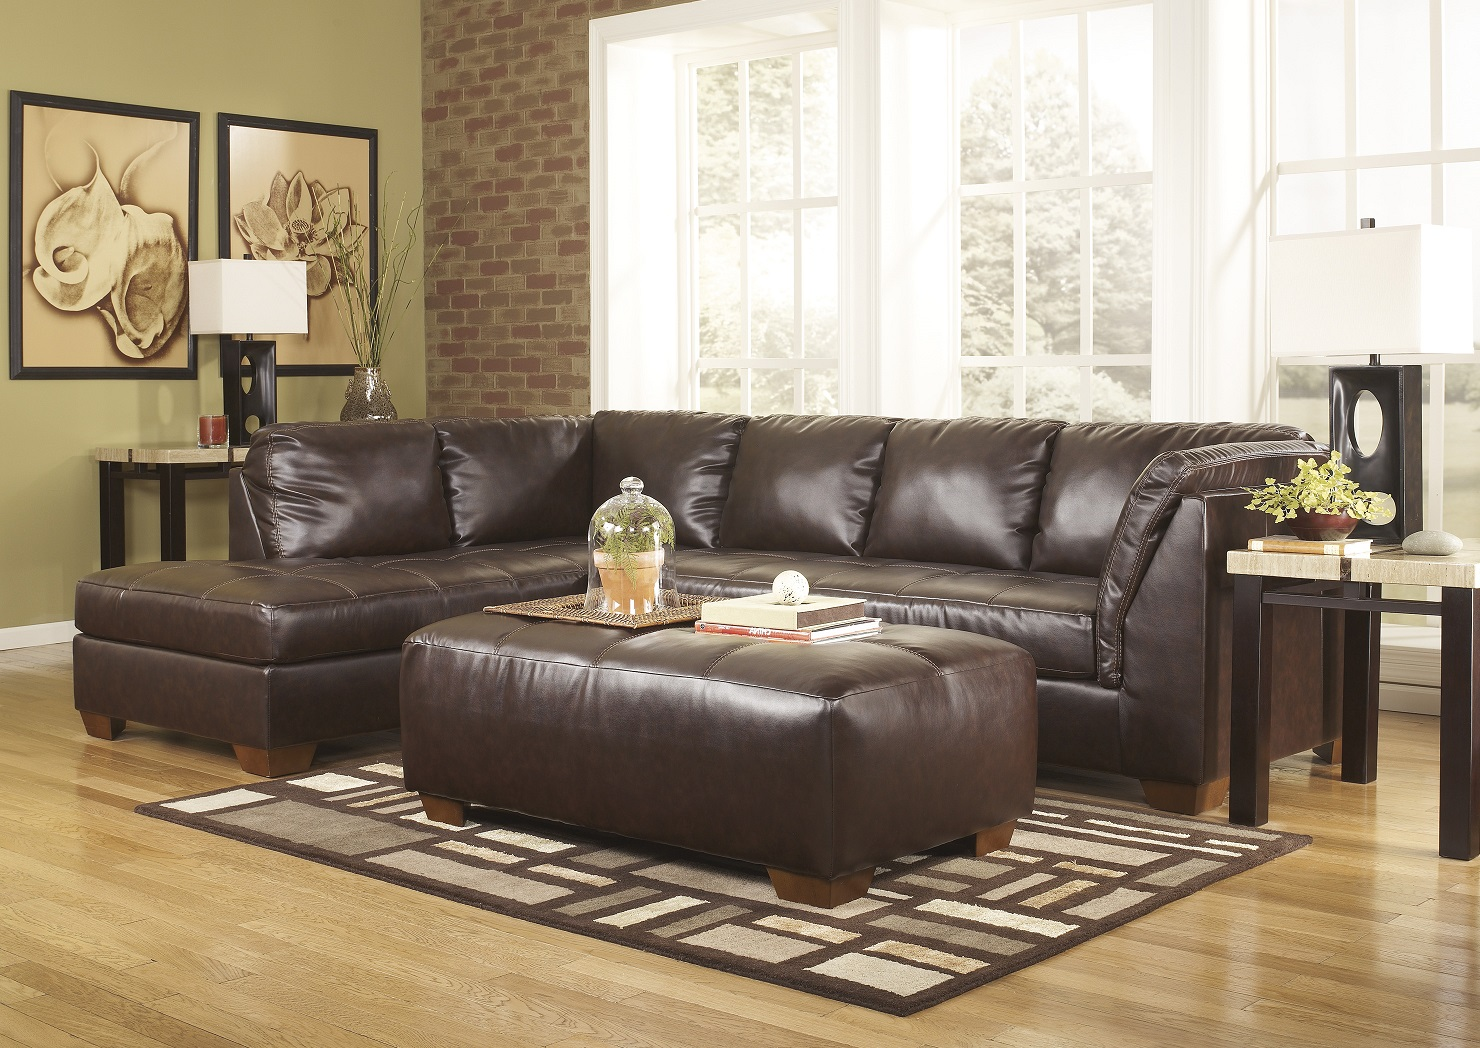 448 bonded leather chaise was 1069 sofa sectional sale